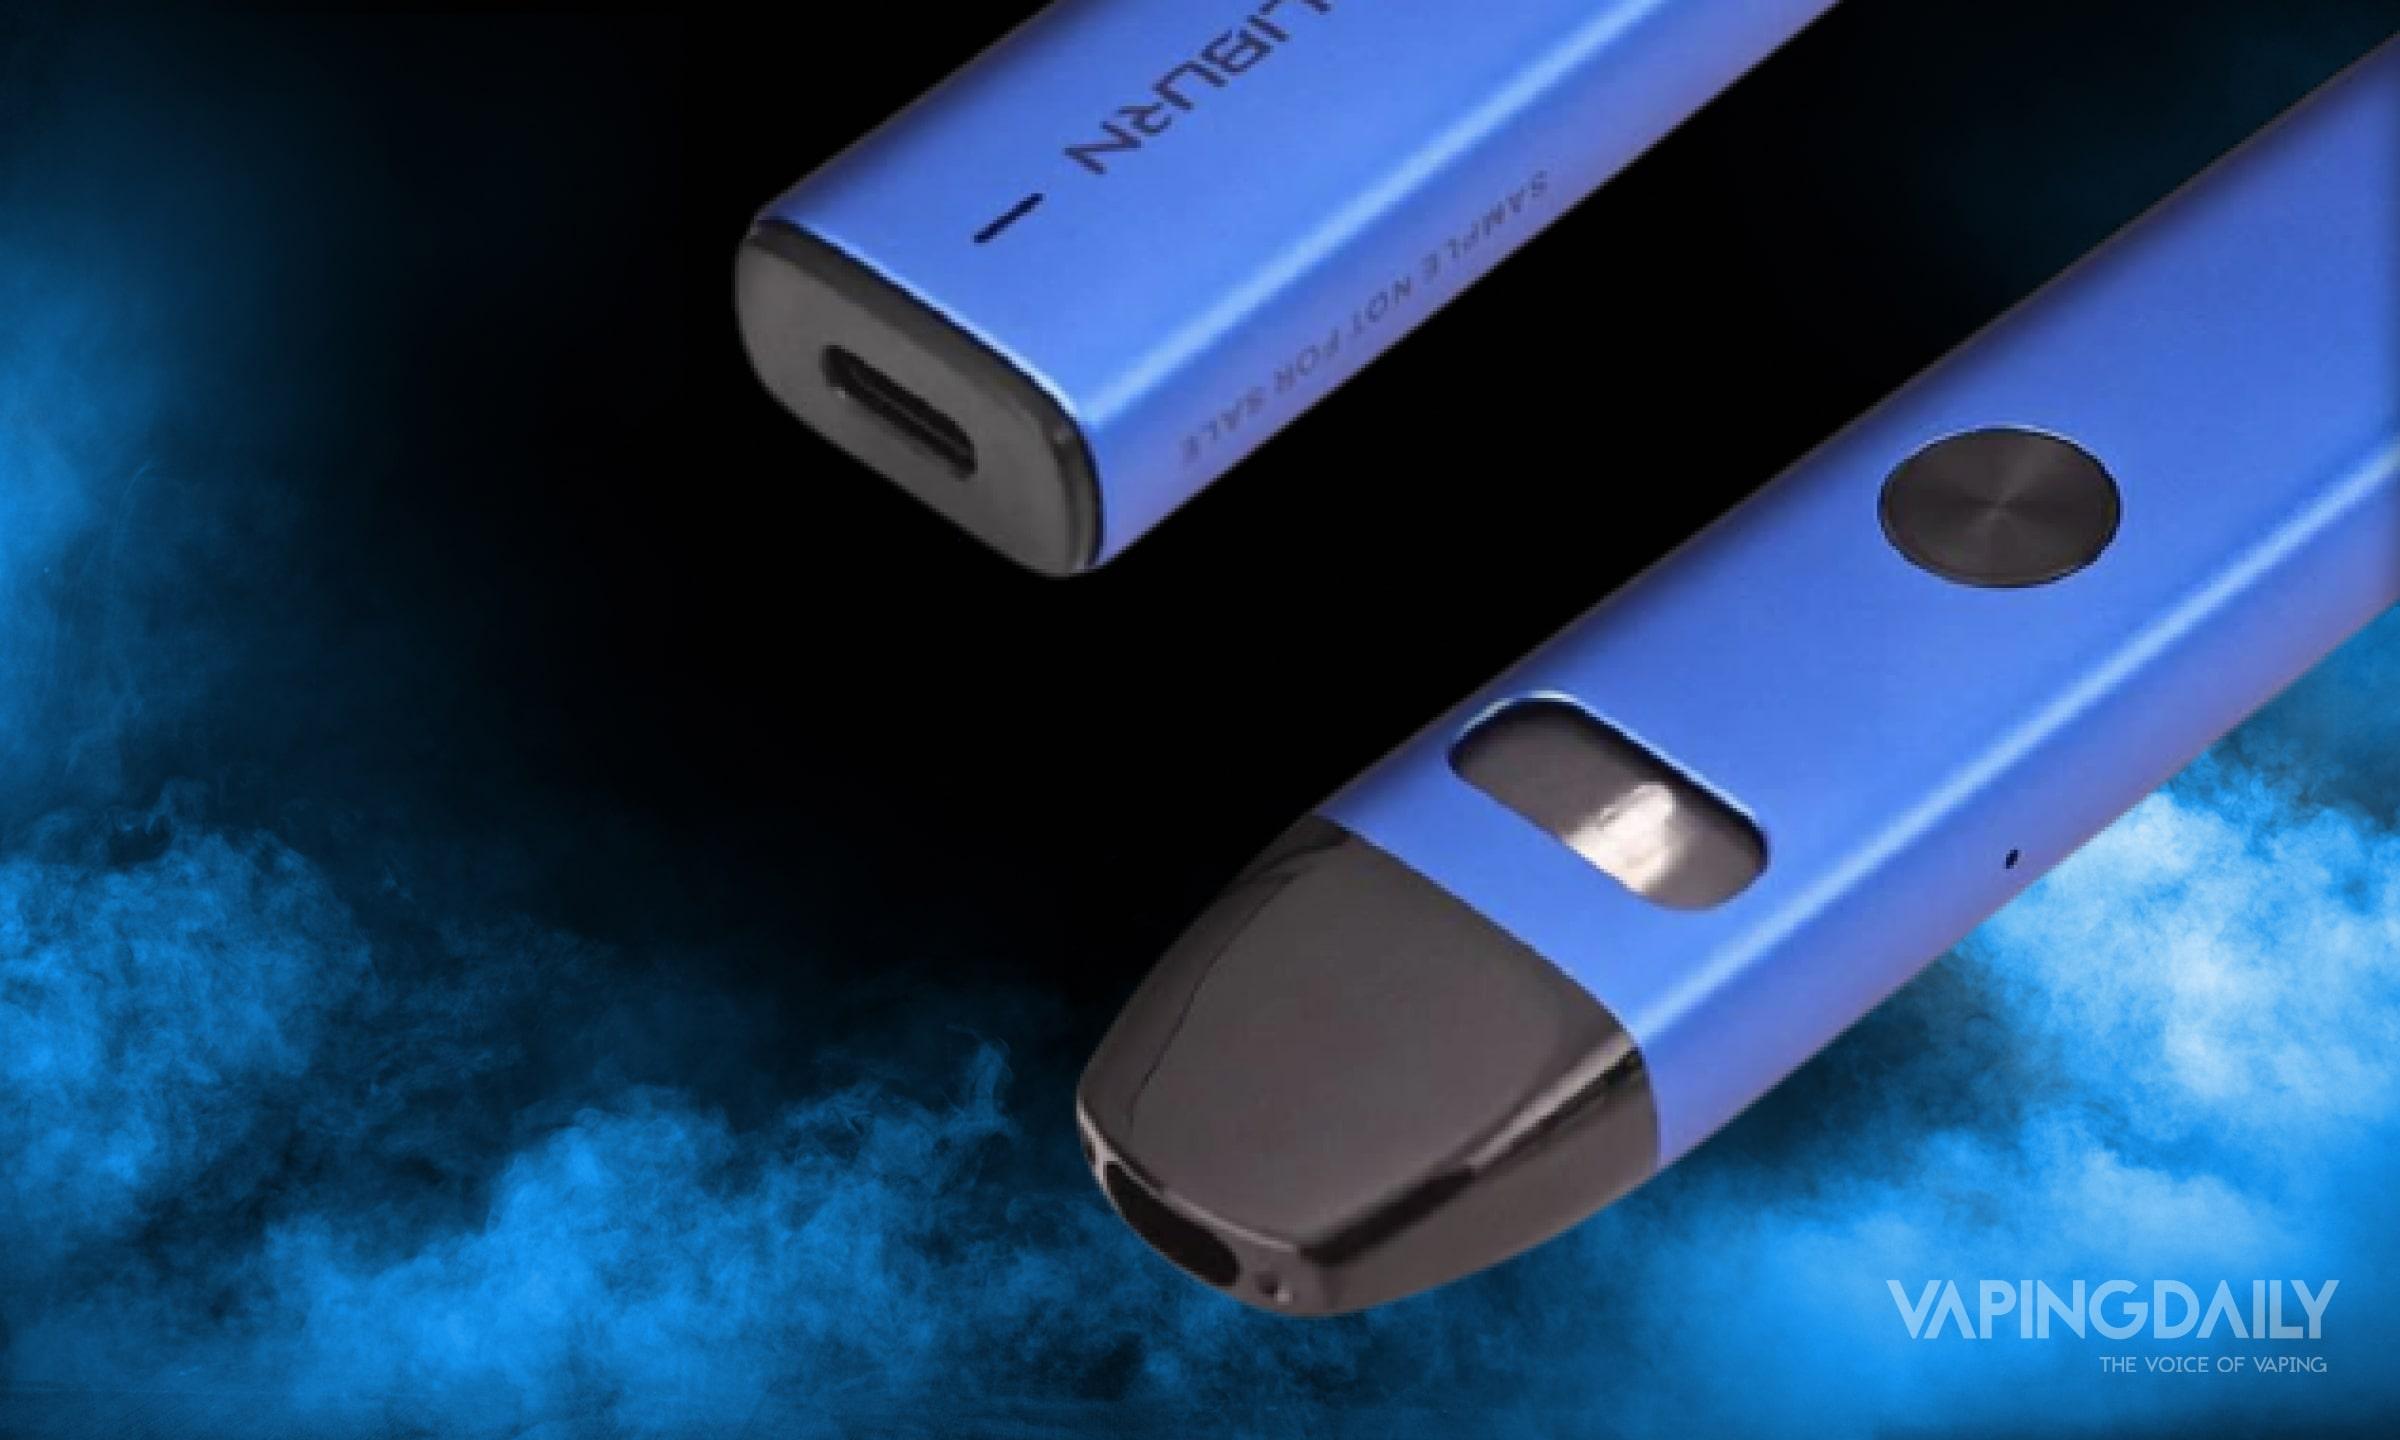 The Uwell Caliburn A2: A Simple and Flavorful Pod Mod